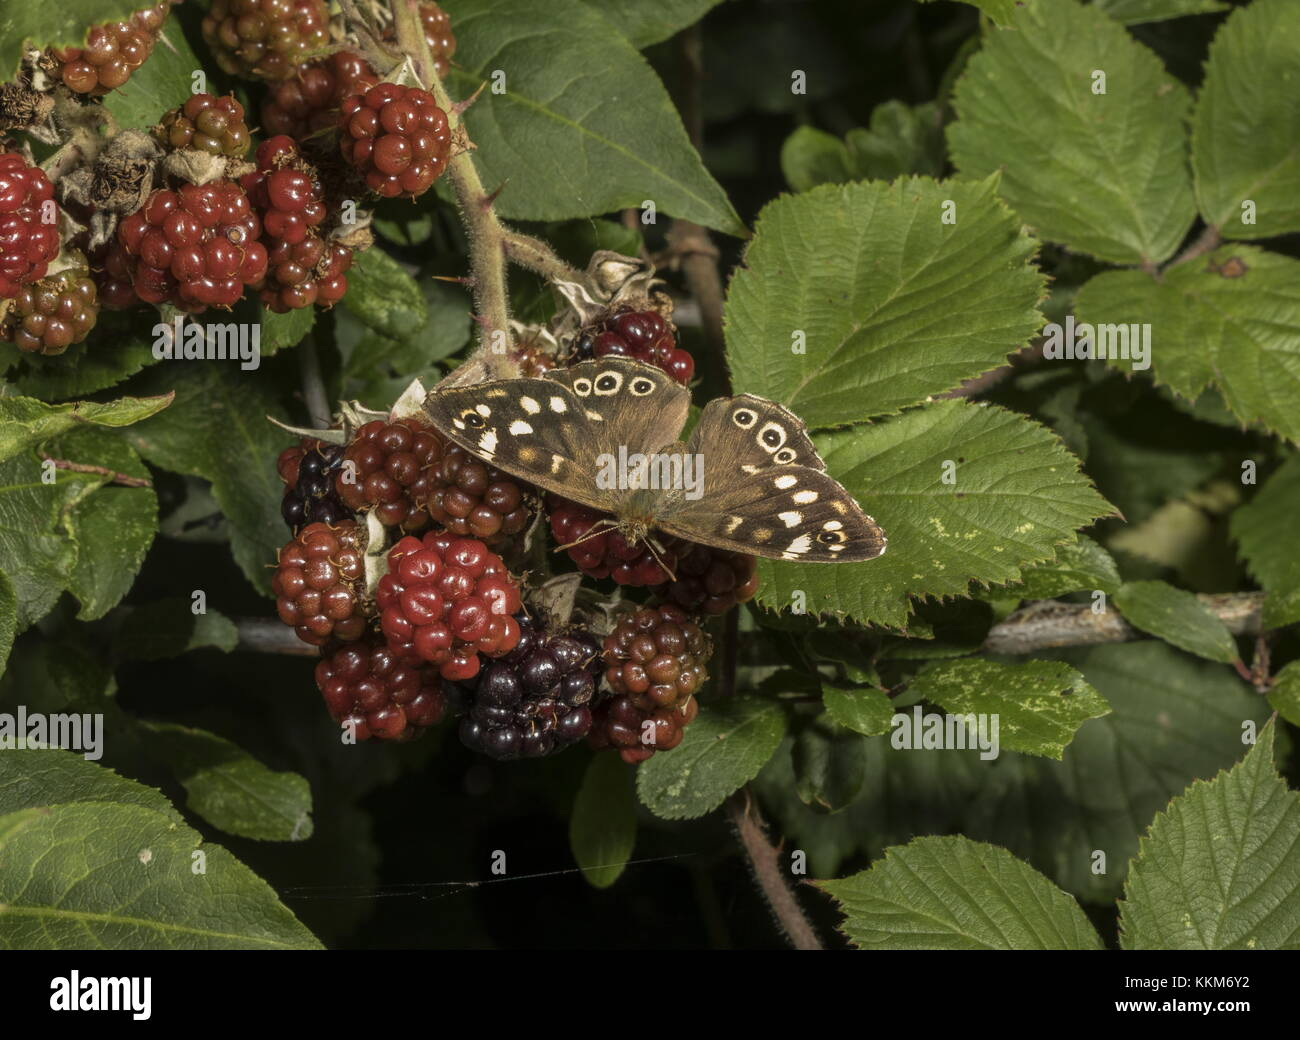 Speckled Wood butterfly, Pararge aegeria, feeding on blackberries. Dorset. - Stock Image